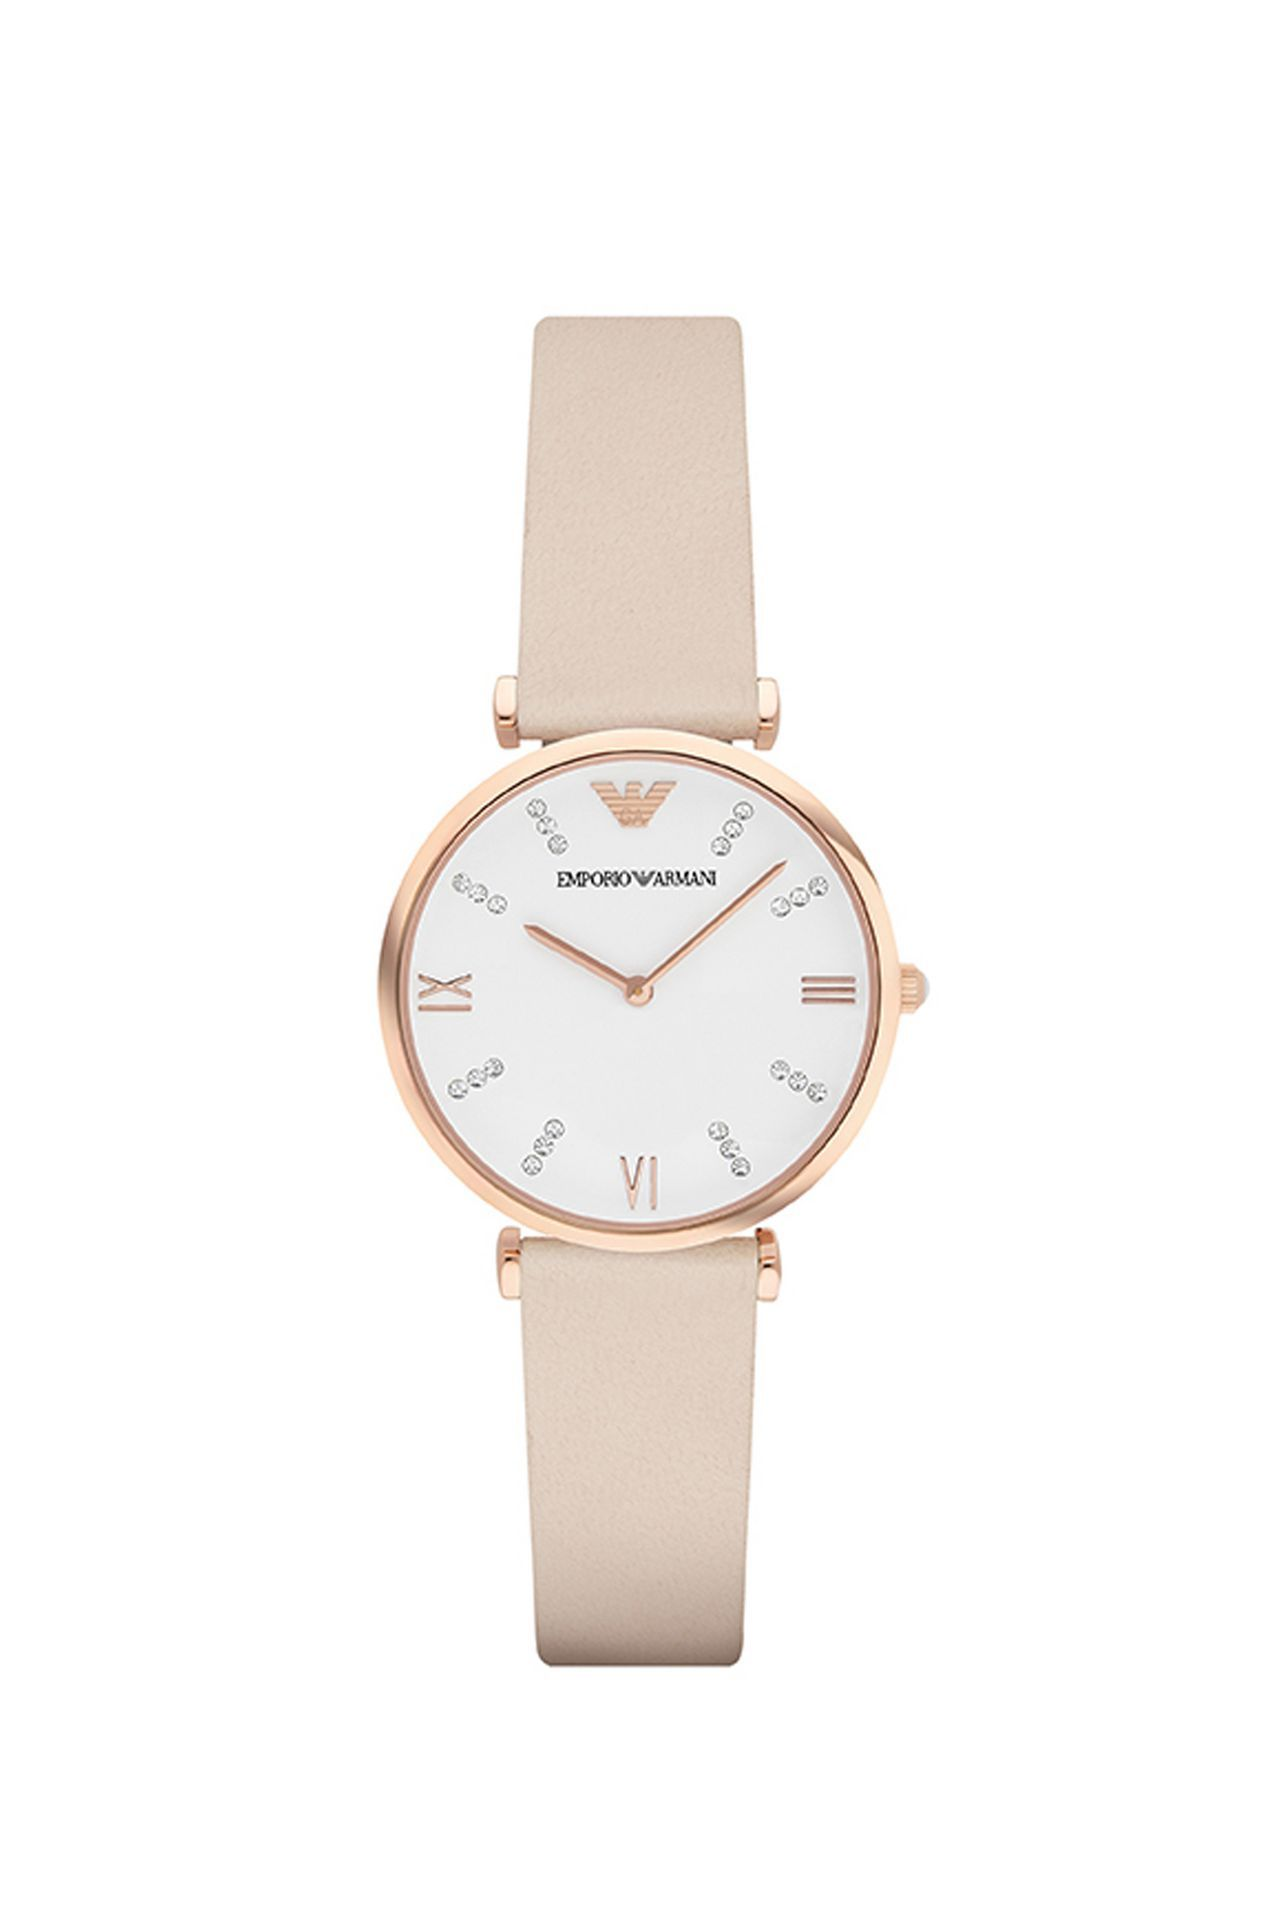 Emporio Armani Women Watch - 2 SPHERE WATCH Emporio Armani Official Online  Store 8843f149ae58